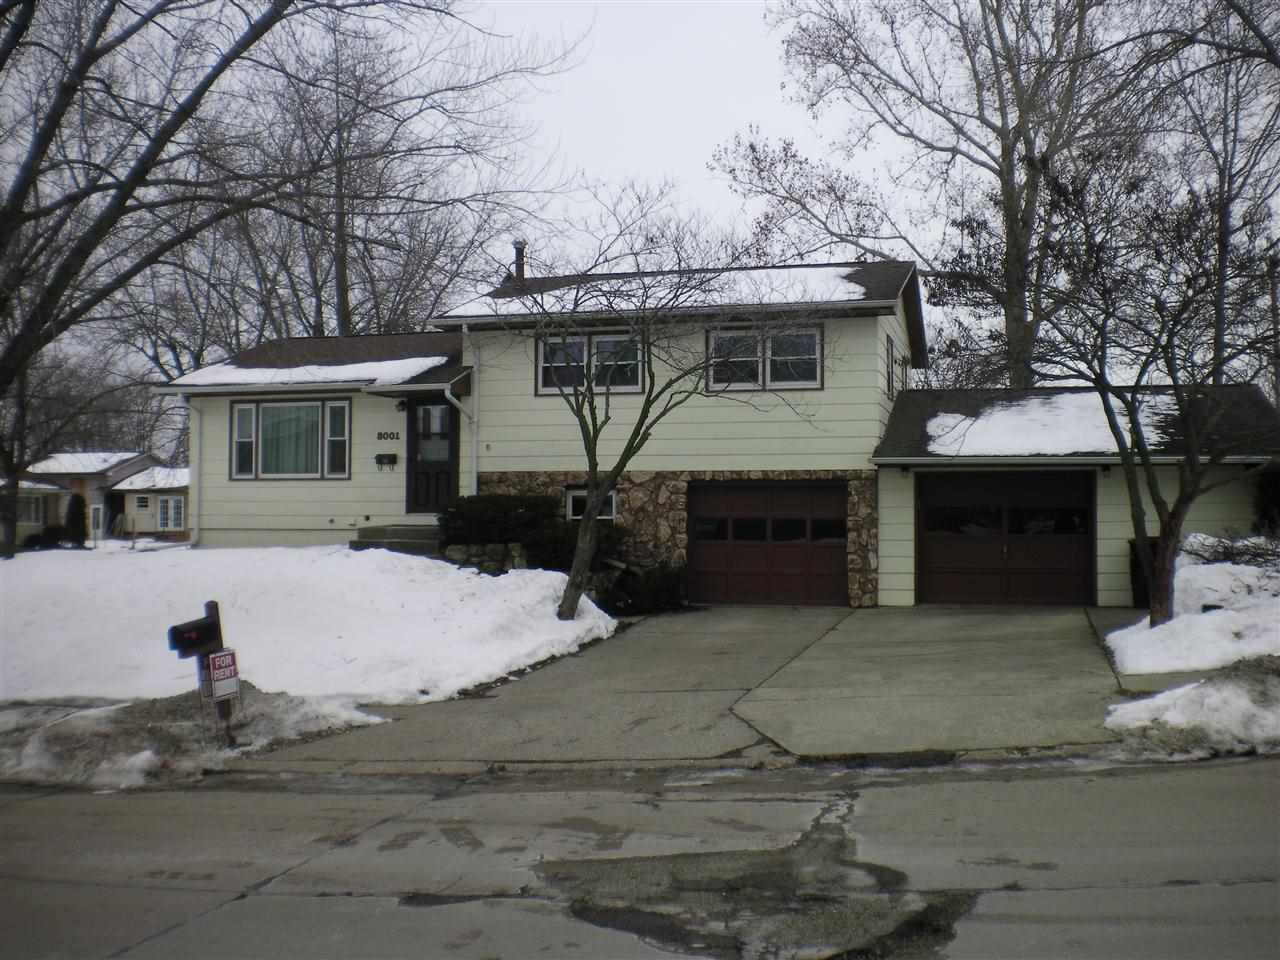 Rental Homes for Rent, ListingId:31635533, location: 8001 10TH ST W Rock Island 61201